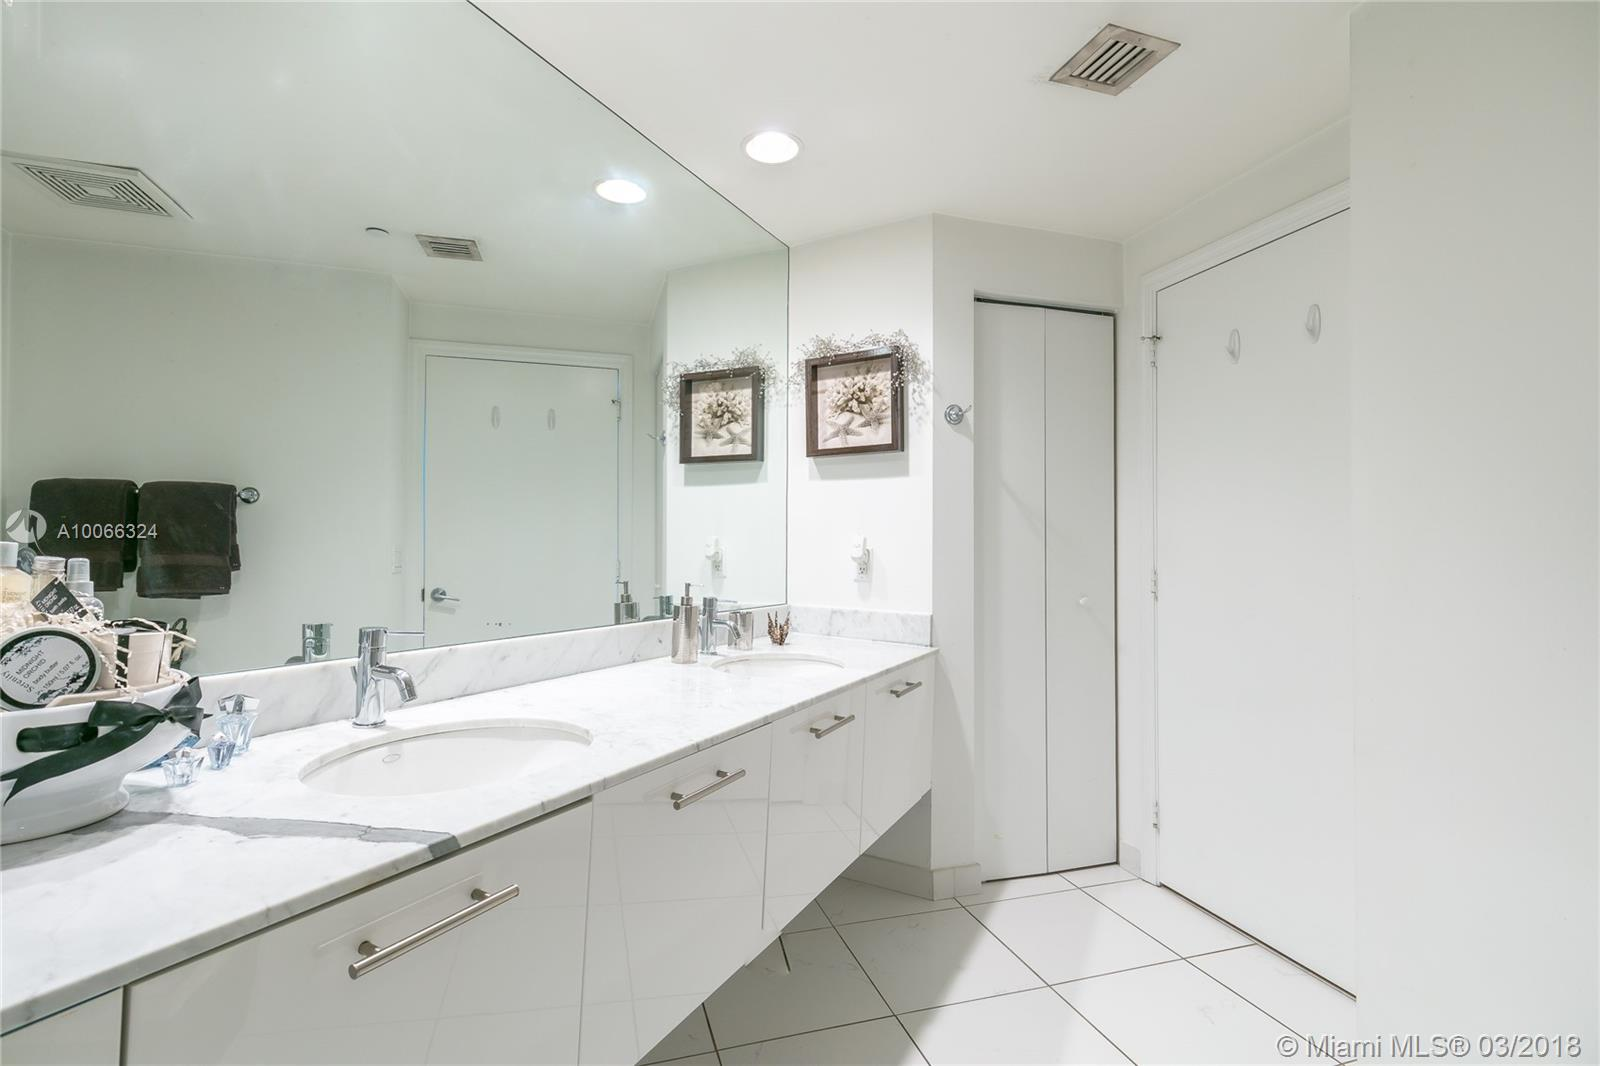 500 Brickell Avenue and 55 SE 6 Street, Miami, FL 33131, 500 Brickell #3301, Brickell, Miami A10066324 image #18